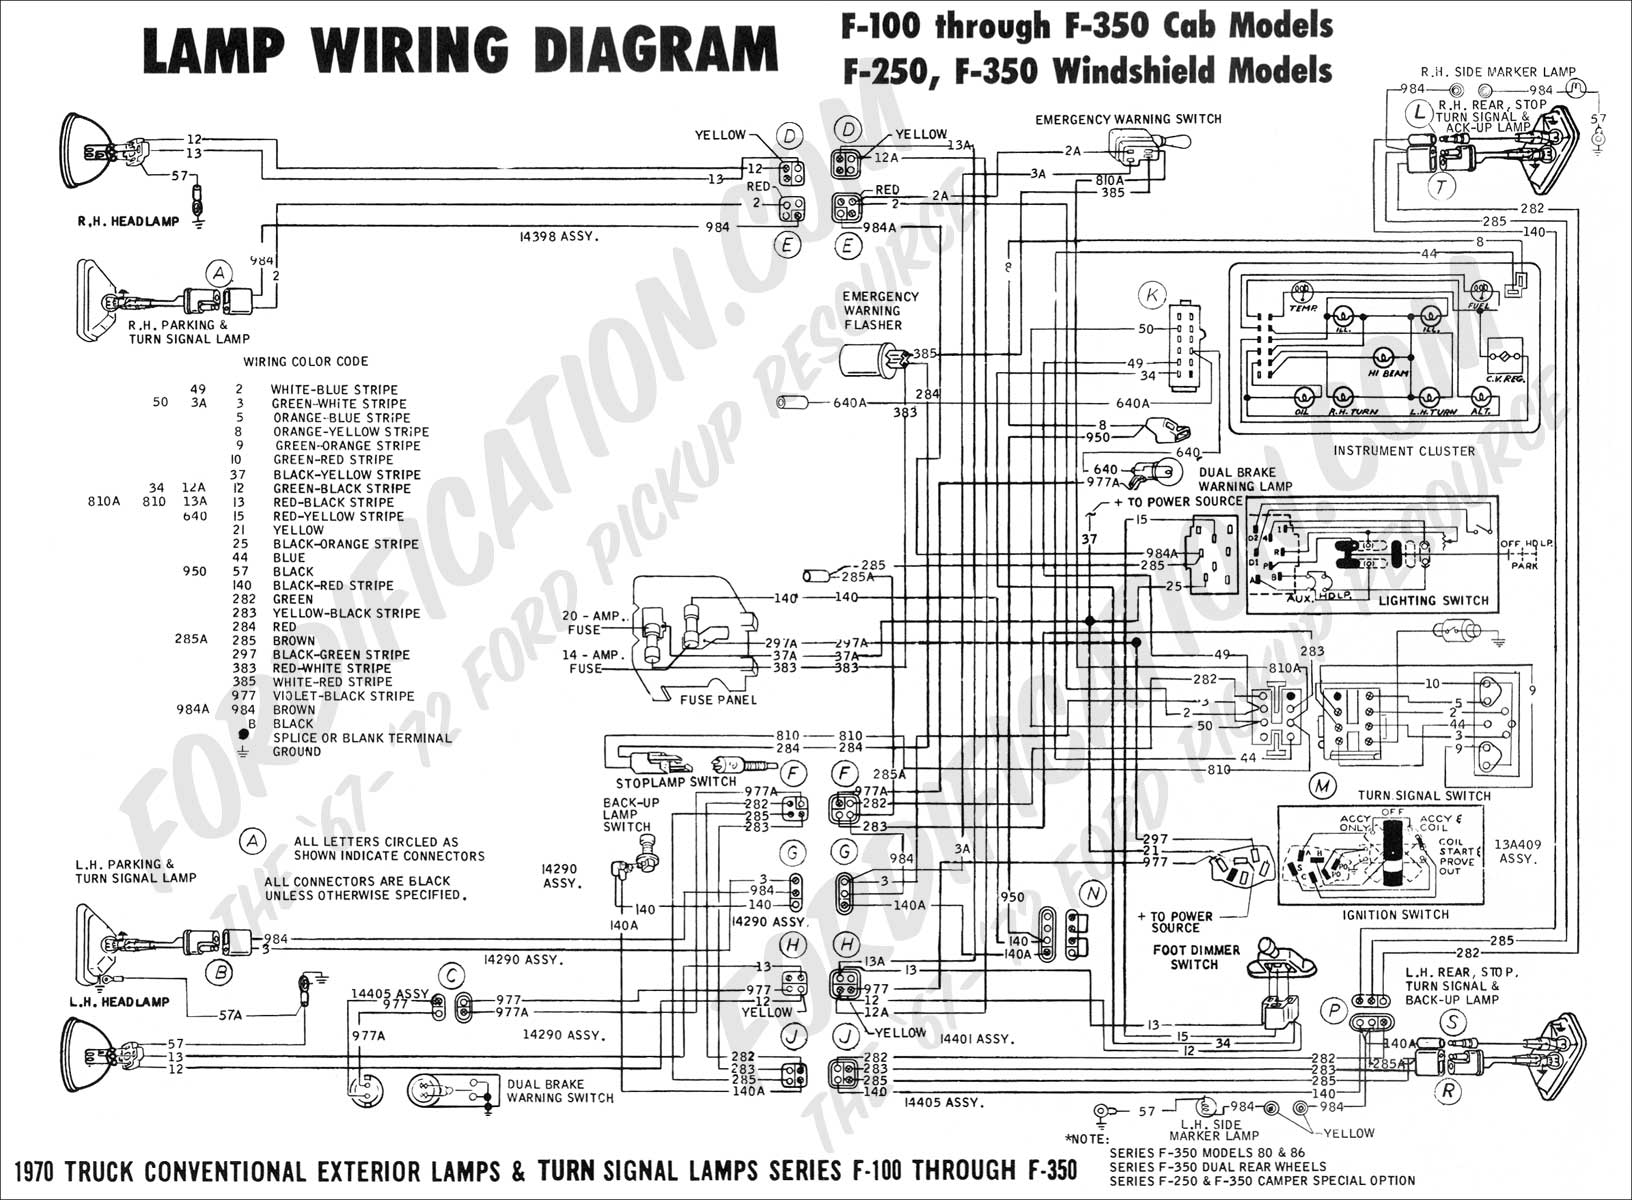 wiring diagram_70ext lights01 1993 ford f250 wiring diagram 1993 ford f 250 engine \u2022 free wiring 1984 ford f150 wiring harness at edmiracle.co